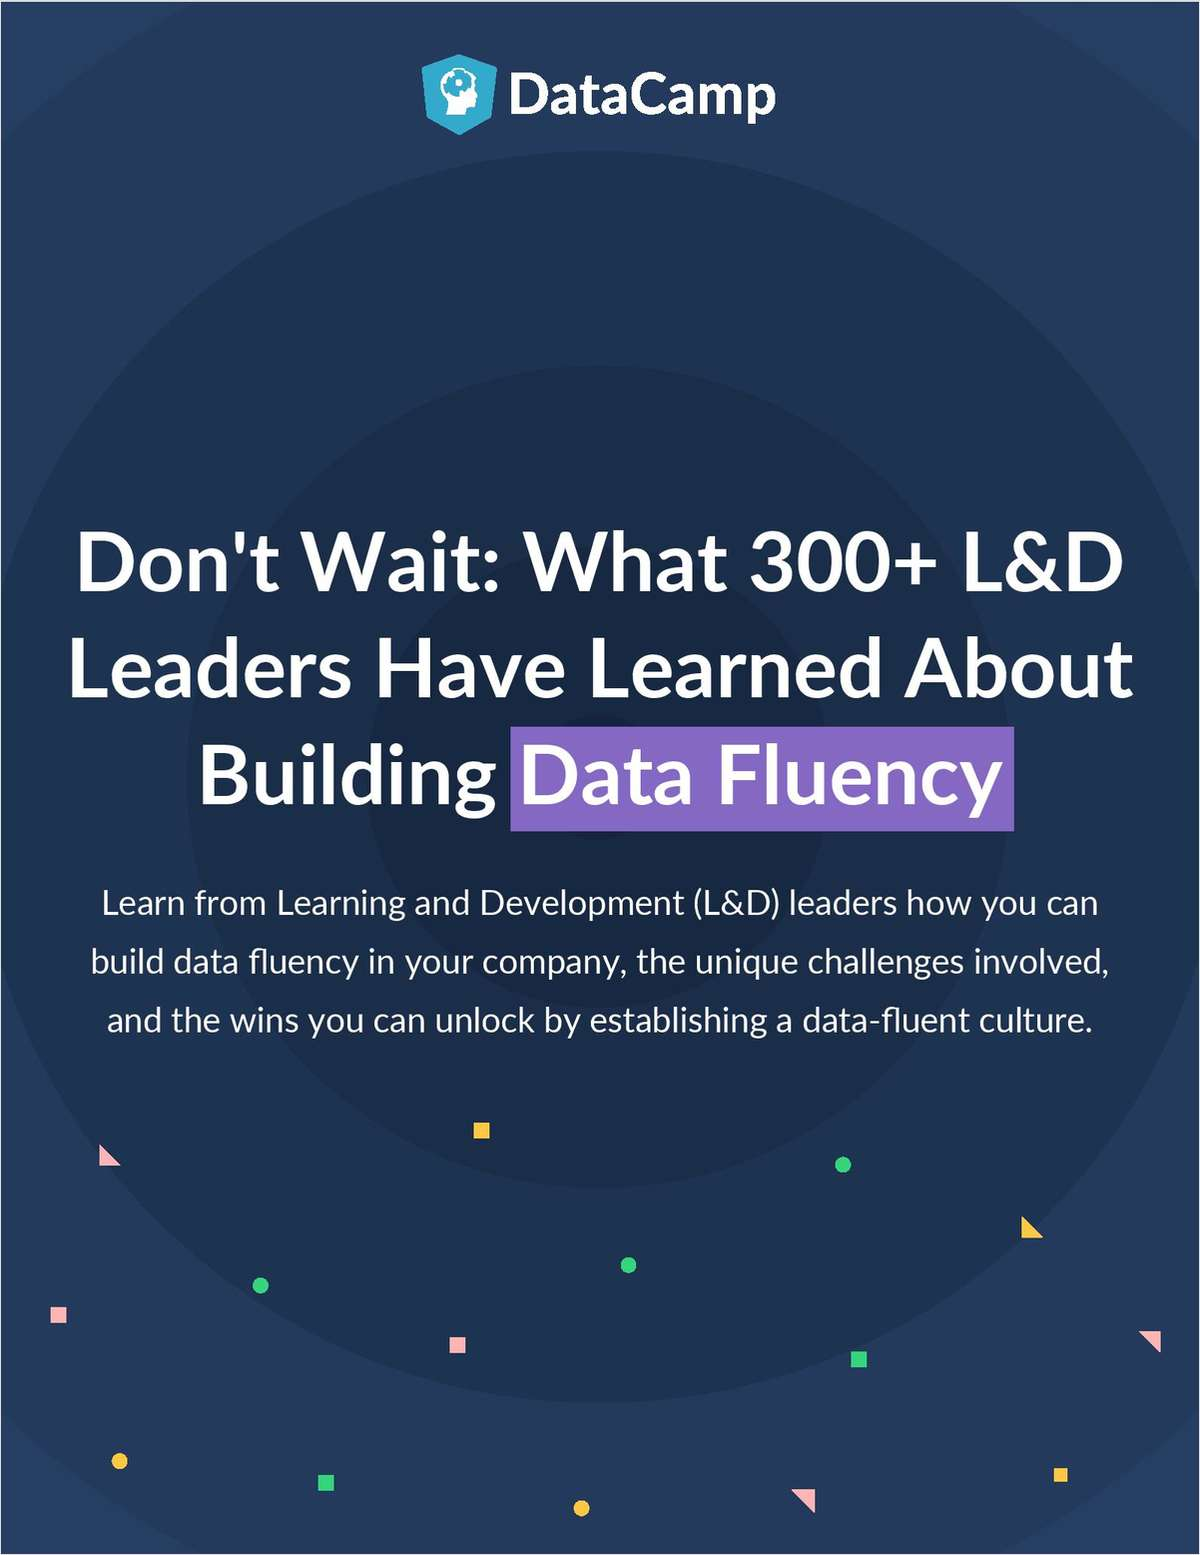 What 300 L&D Leaders Have Learned About Building Data Fluency